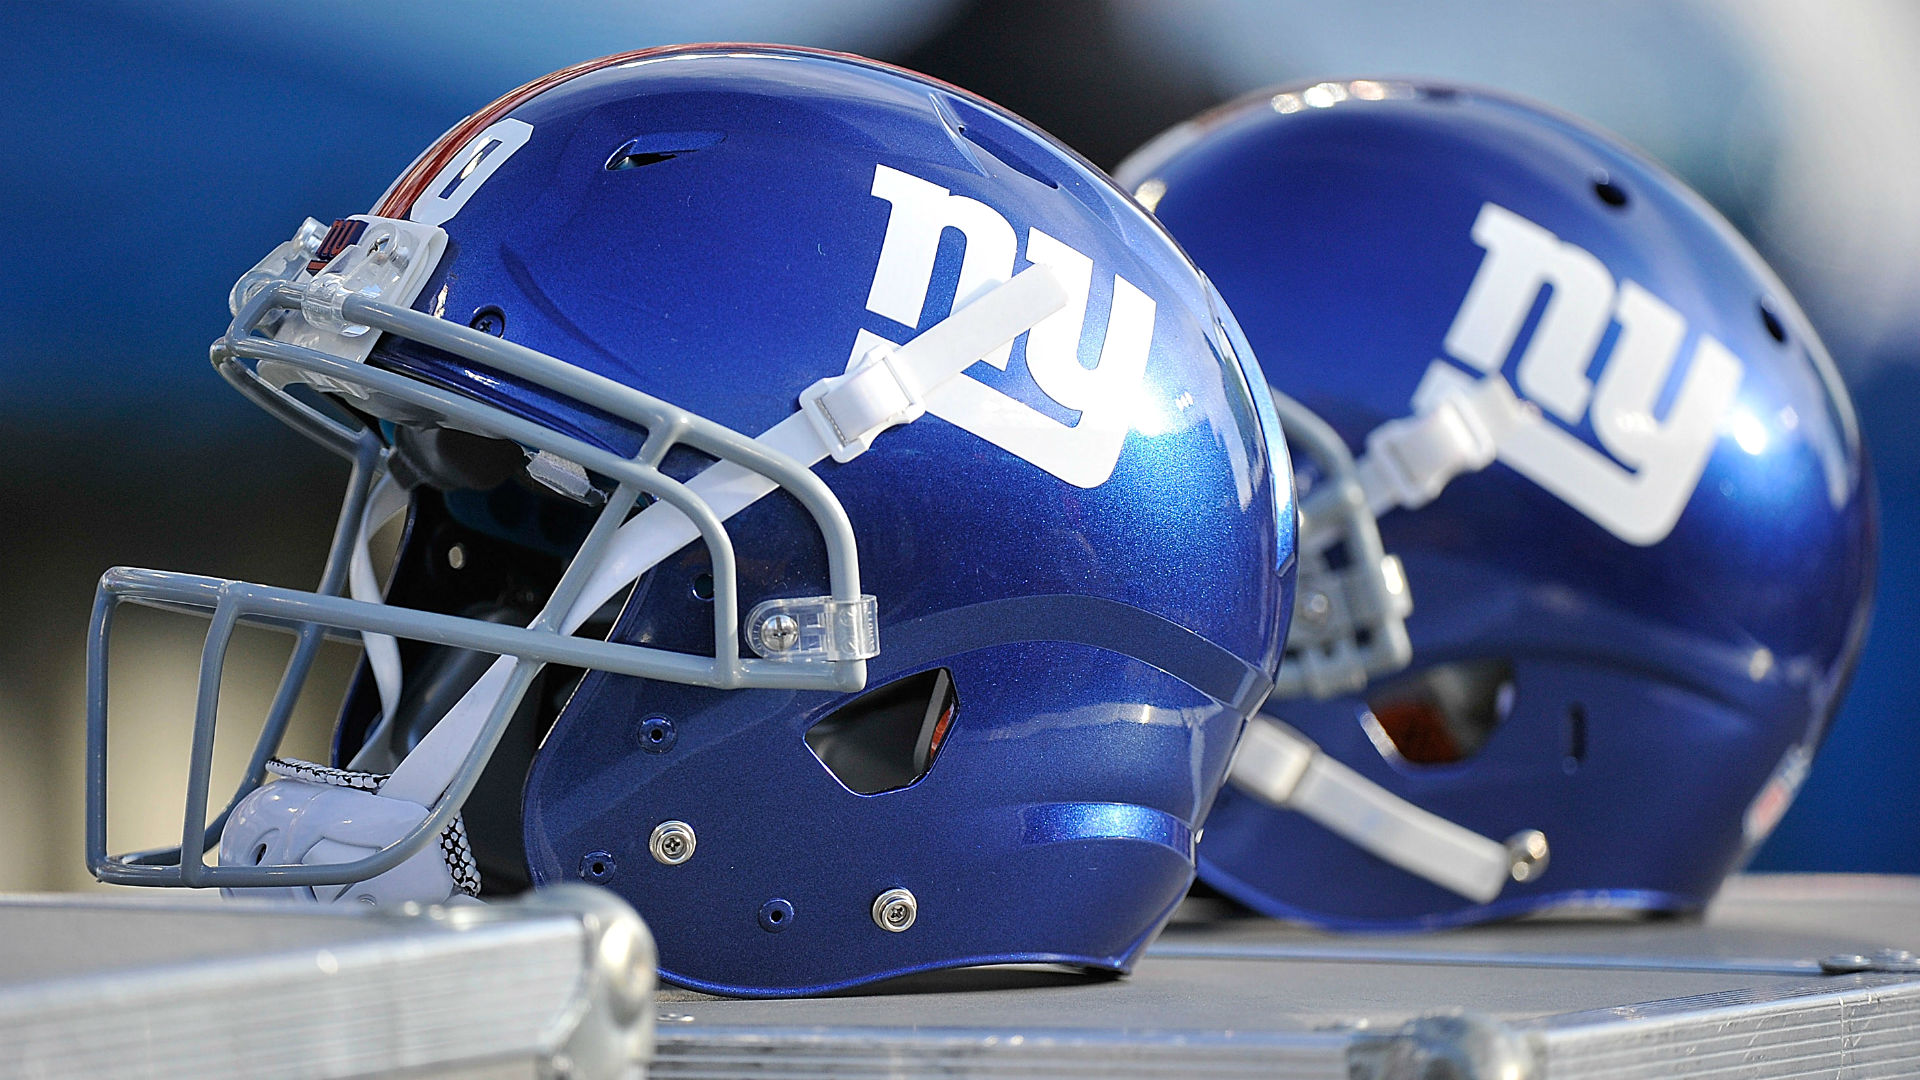 Giants reserve offensive lineman Michael Bowie charged with domestic assault